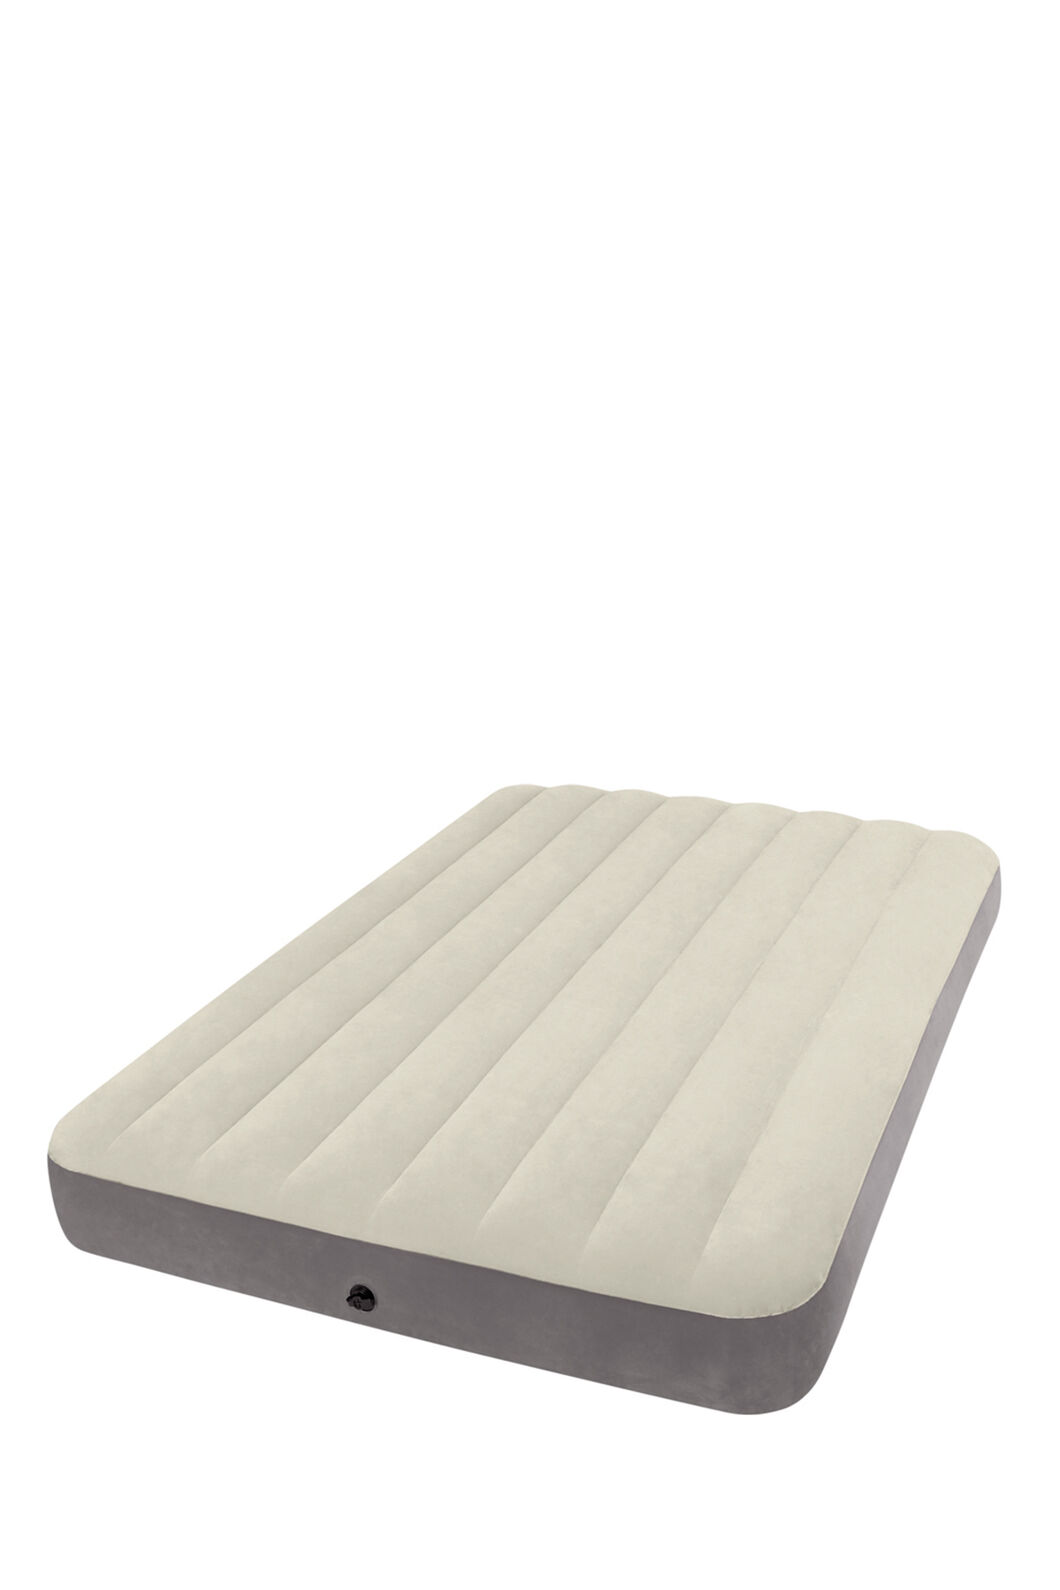 Intex Double Deluxe Dura-Beam Air Bed, None, hi-res